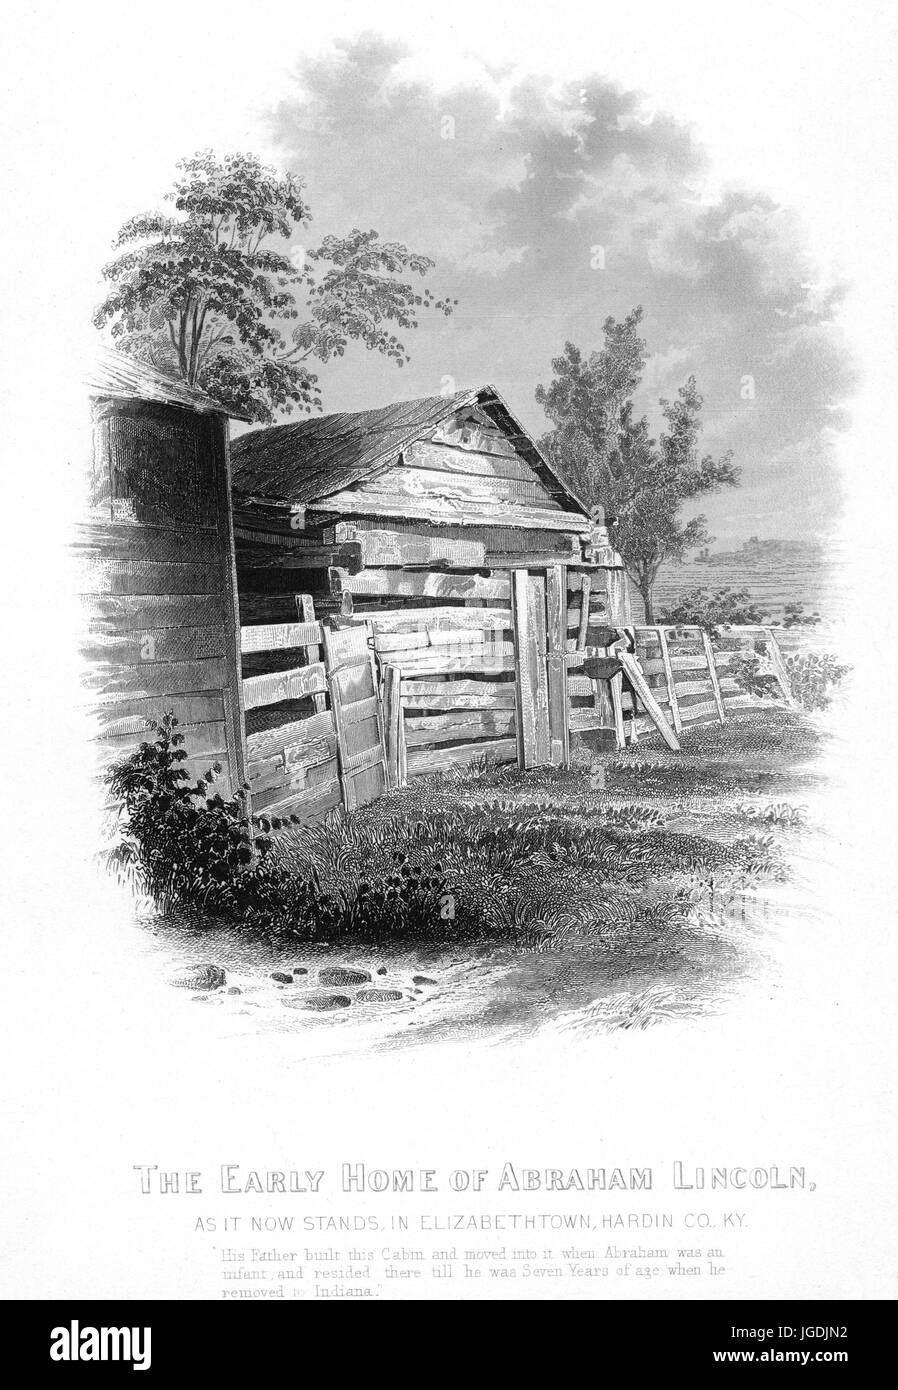 Engraving of the exterior of the childhood home of Abraham Lincoln, the 16th President of the United States, in - Stock Image